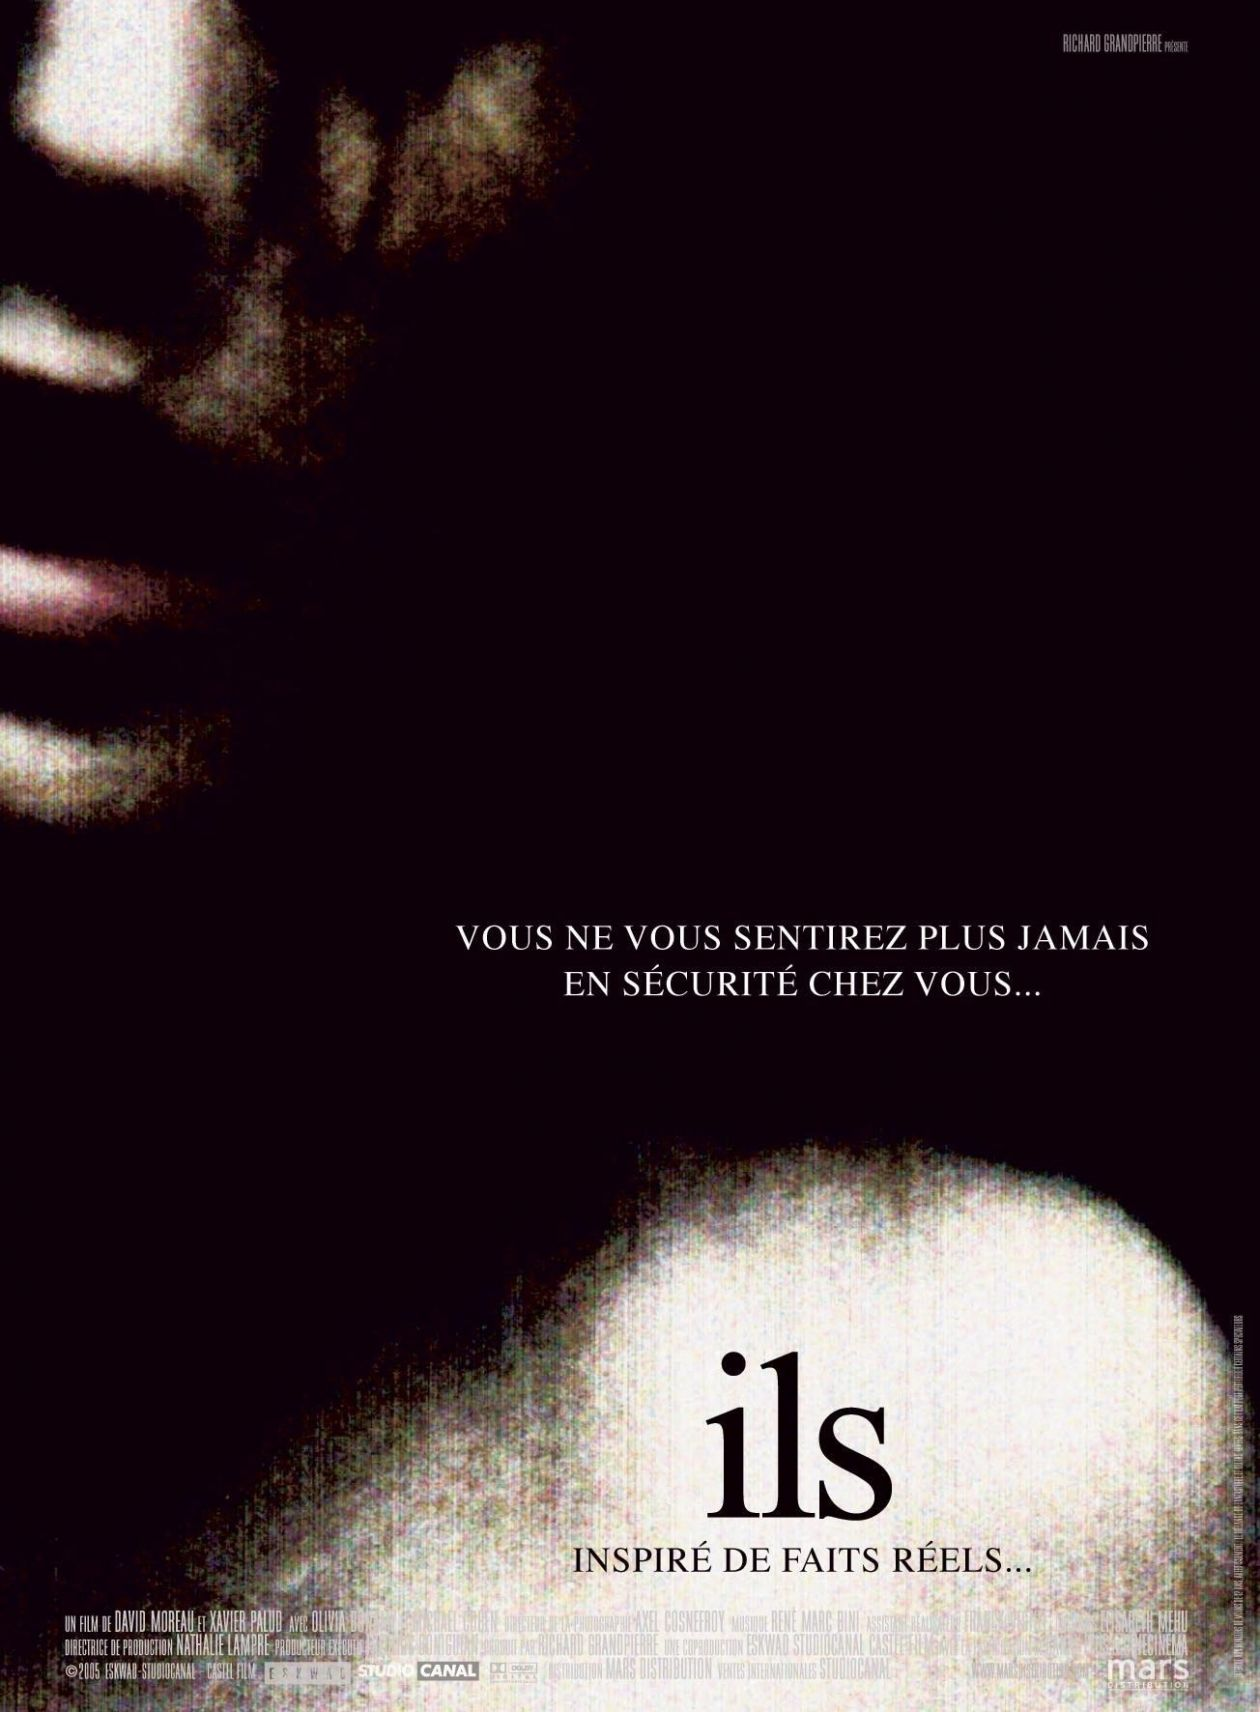 Olivia Bonamy French actress actrice comédienne | Ils / Them / David Moreau / Xavier Palud 2006 / Movie Poster Affiche film